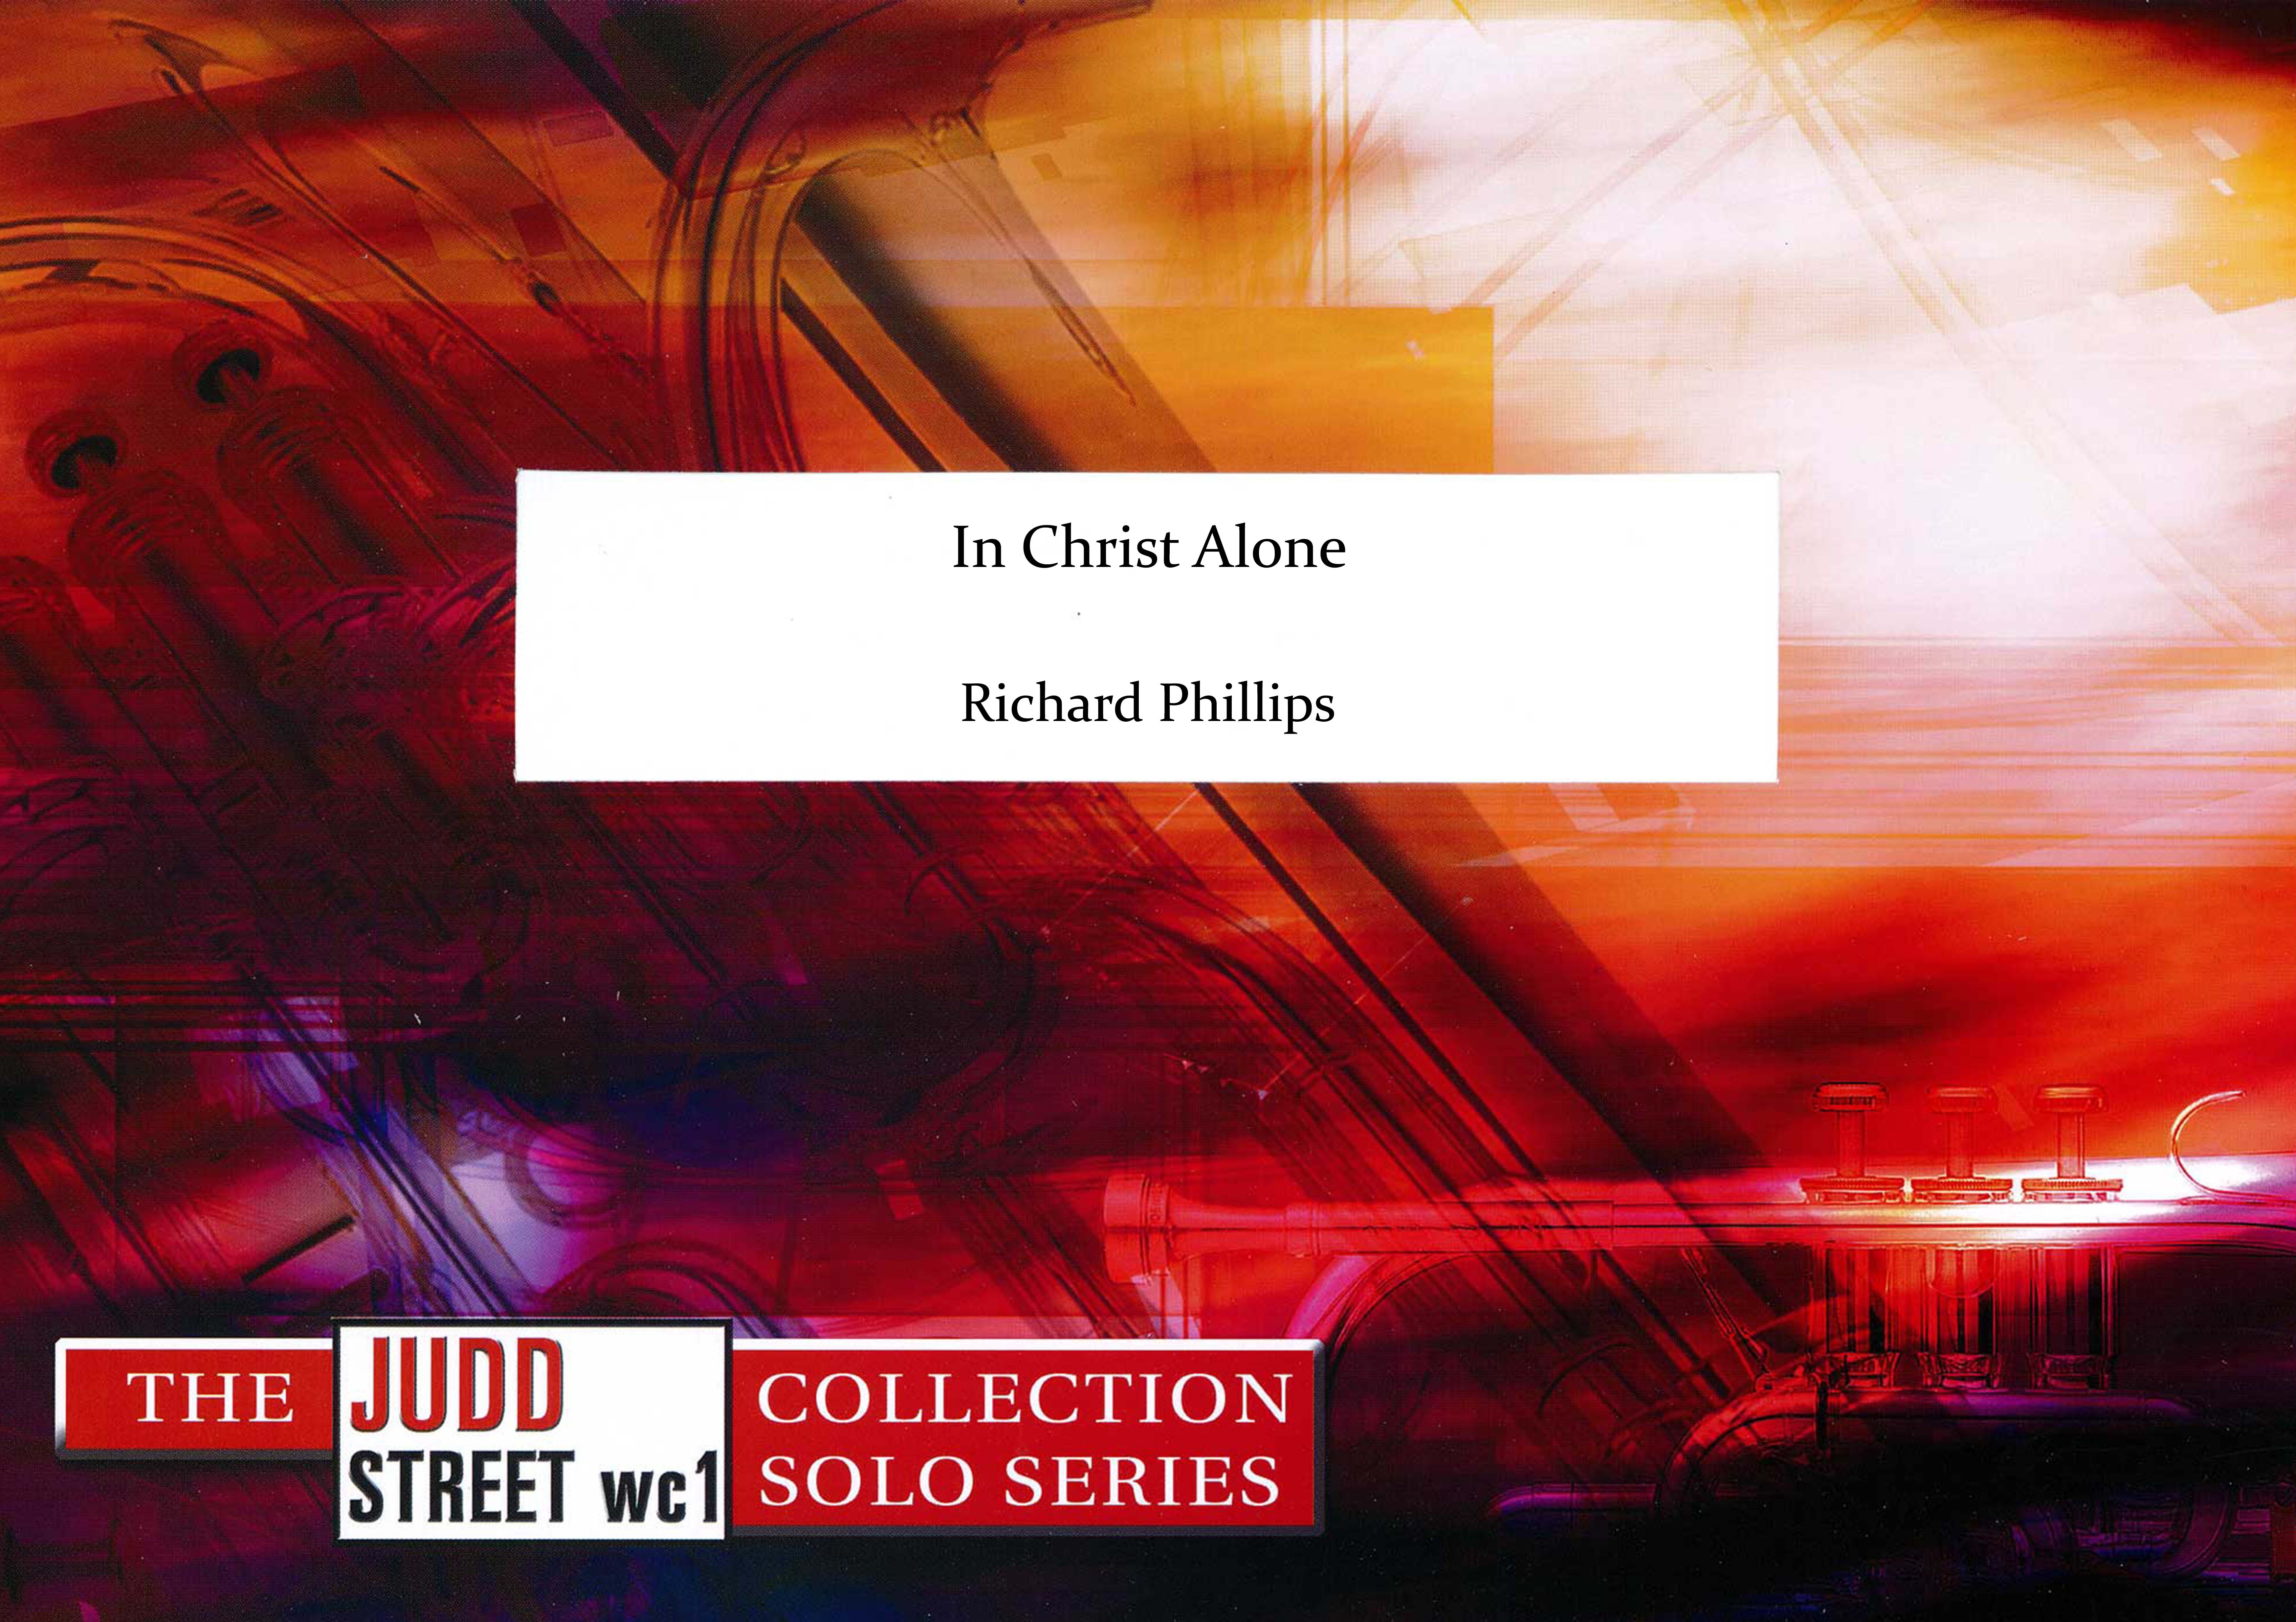 In Christ Alone (Euphonium Solo with Brass Band - Score only)